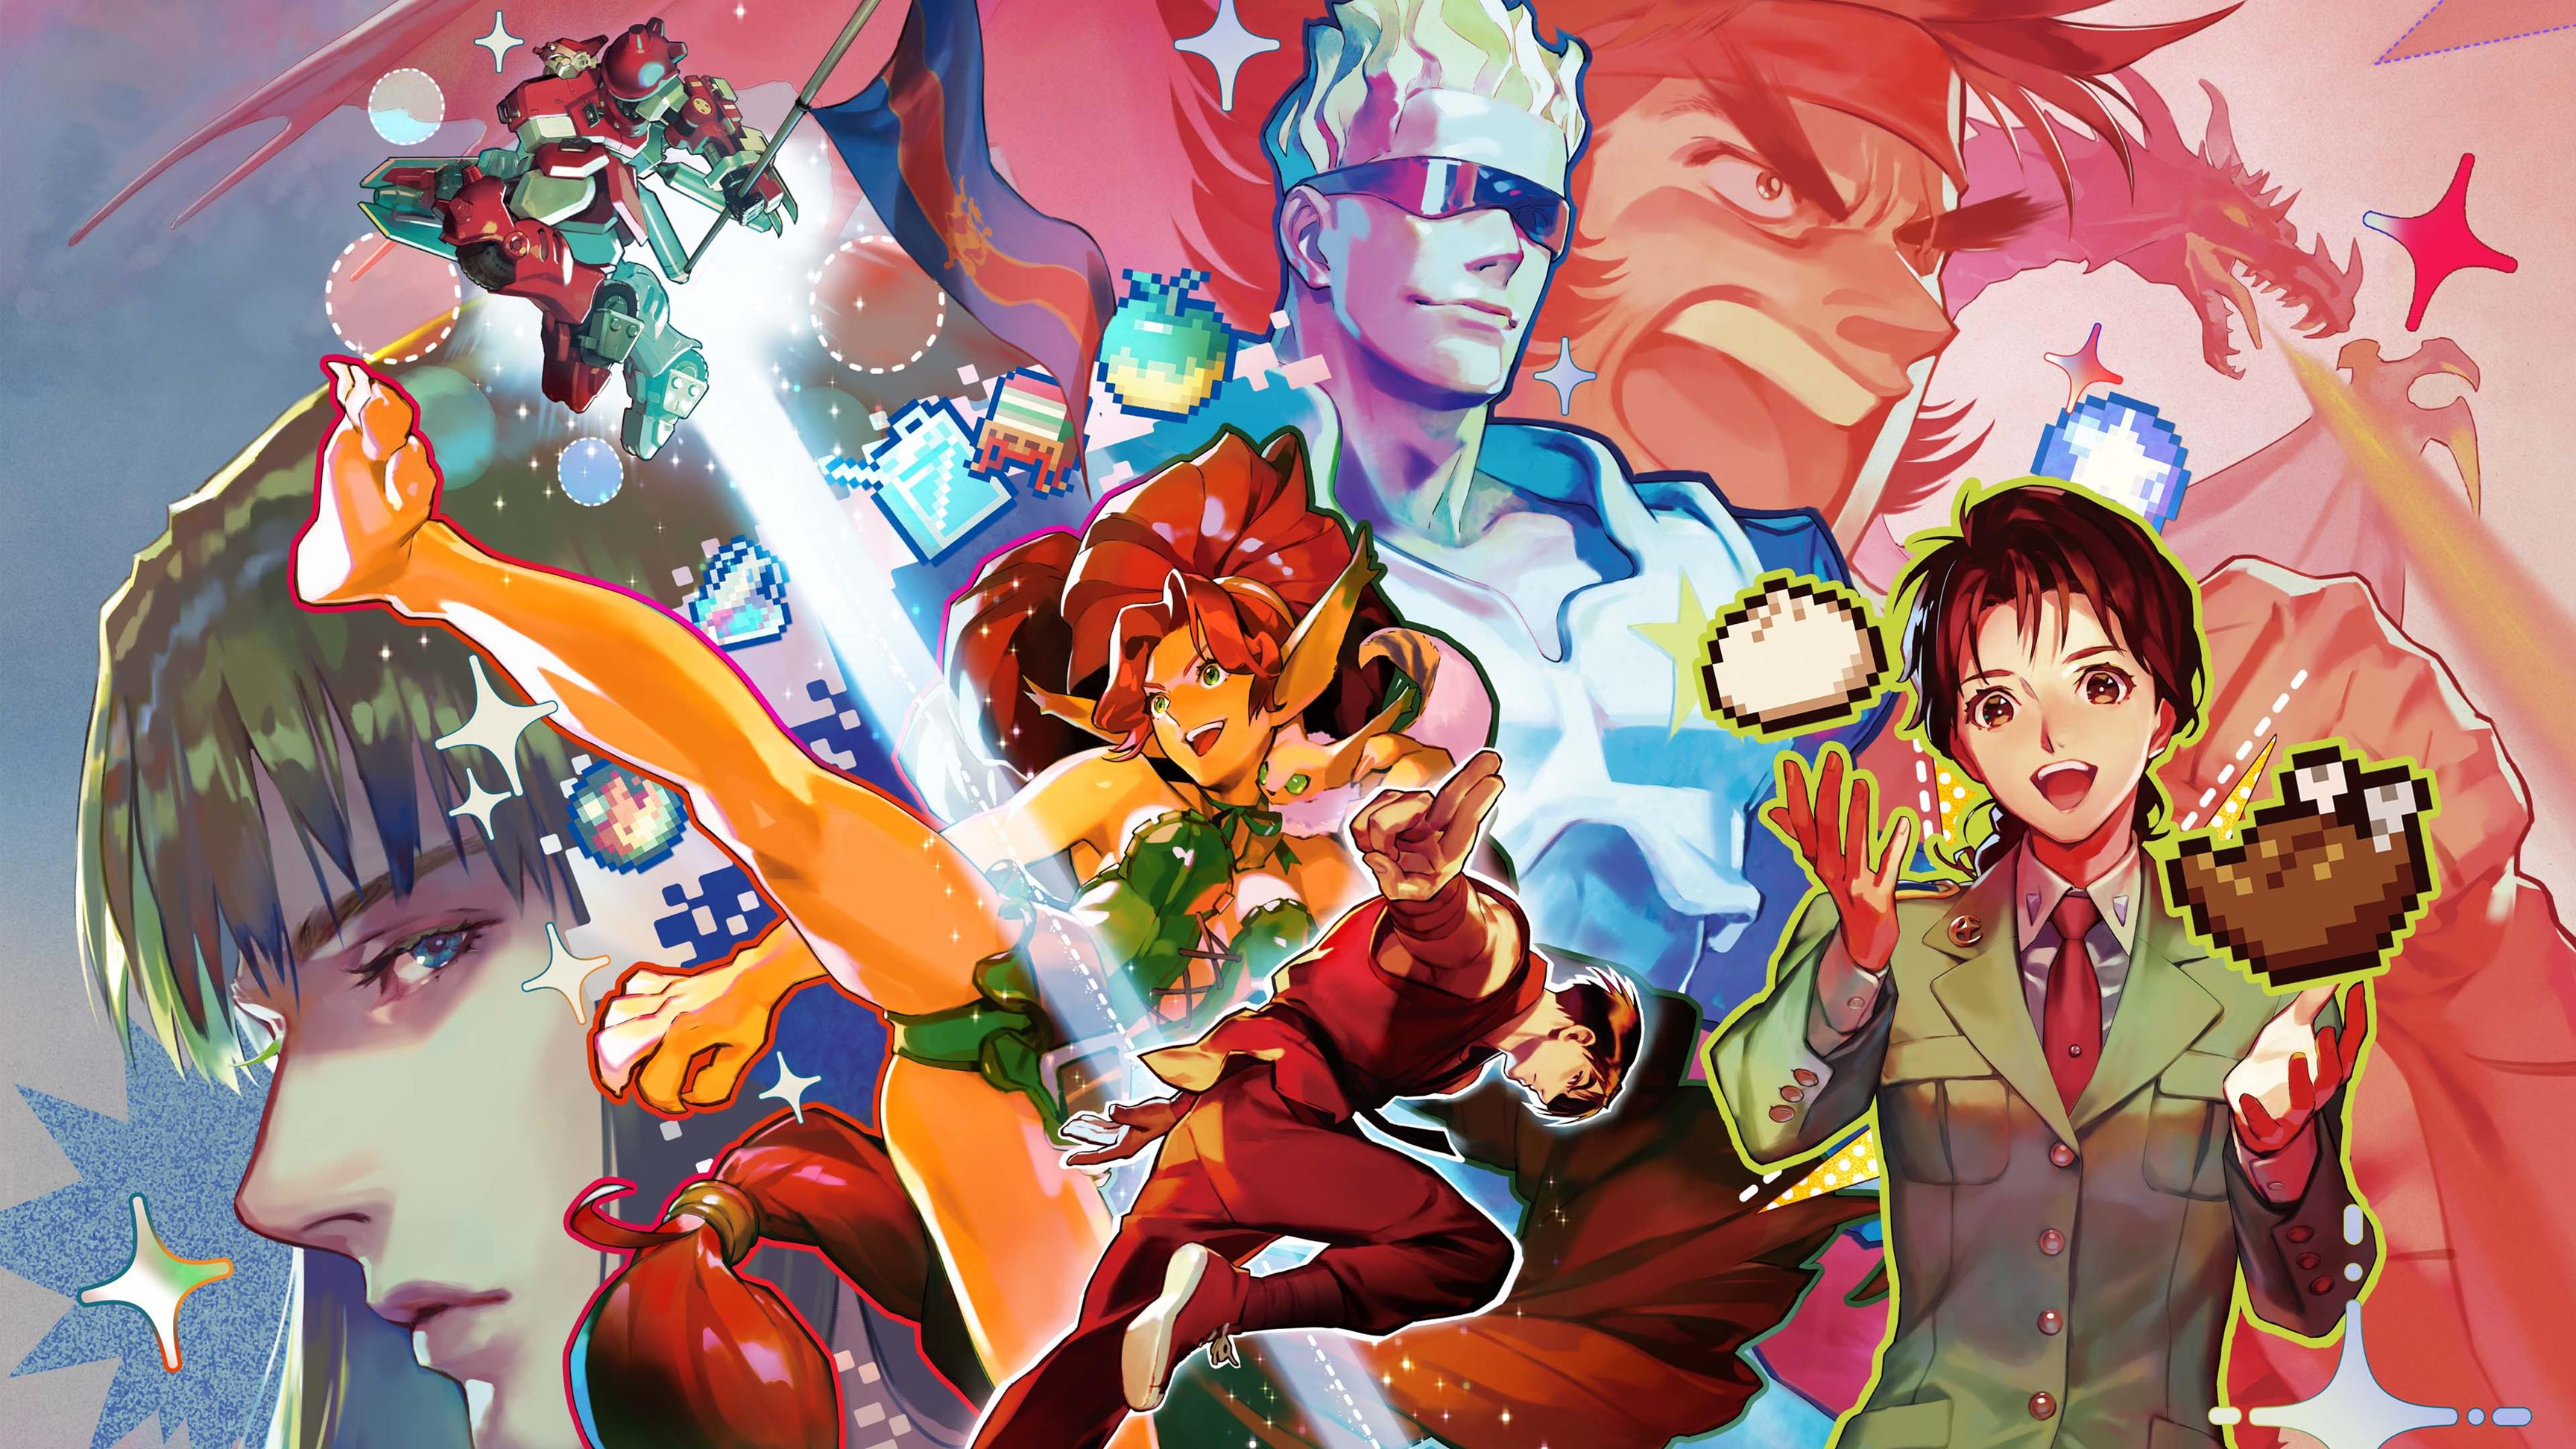 Capcom Beat 'Em Up Bundle brings 7 classic games to PC and consoles